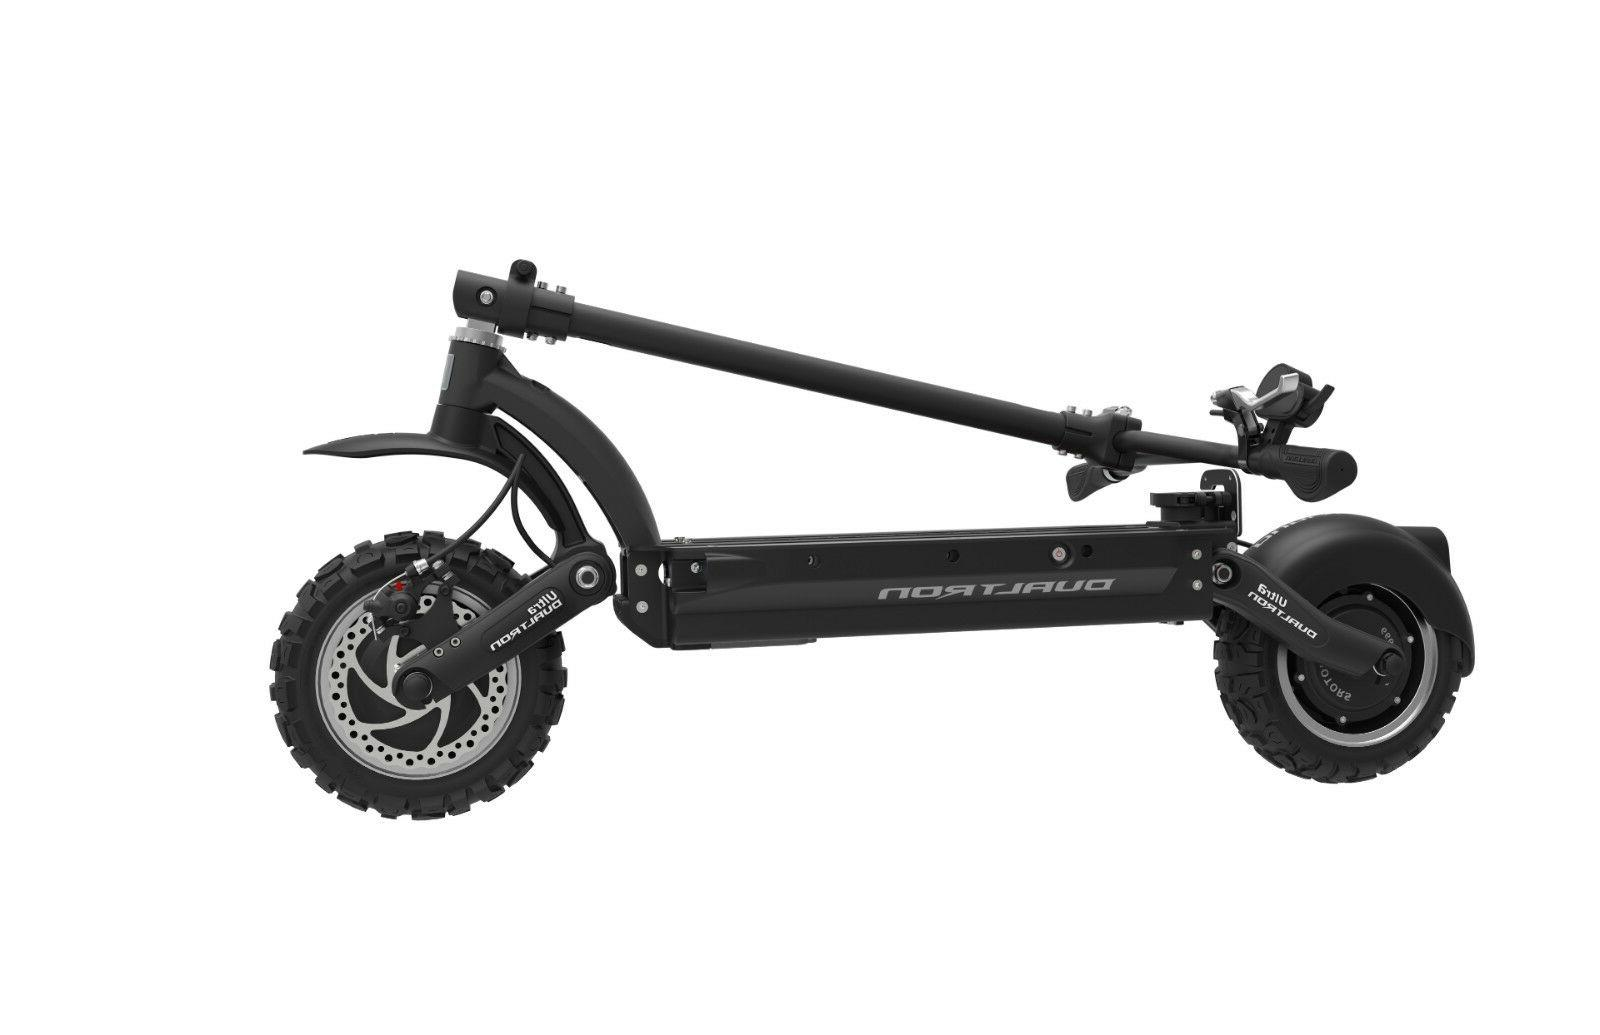 DUALTRON ULTRA SCOOTER BY MINIMOTORS DEALER